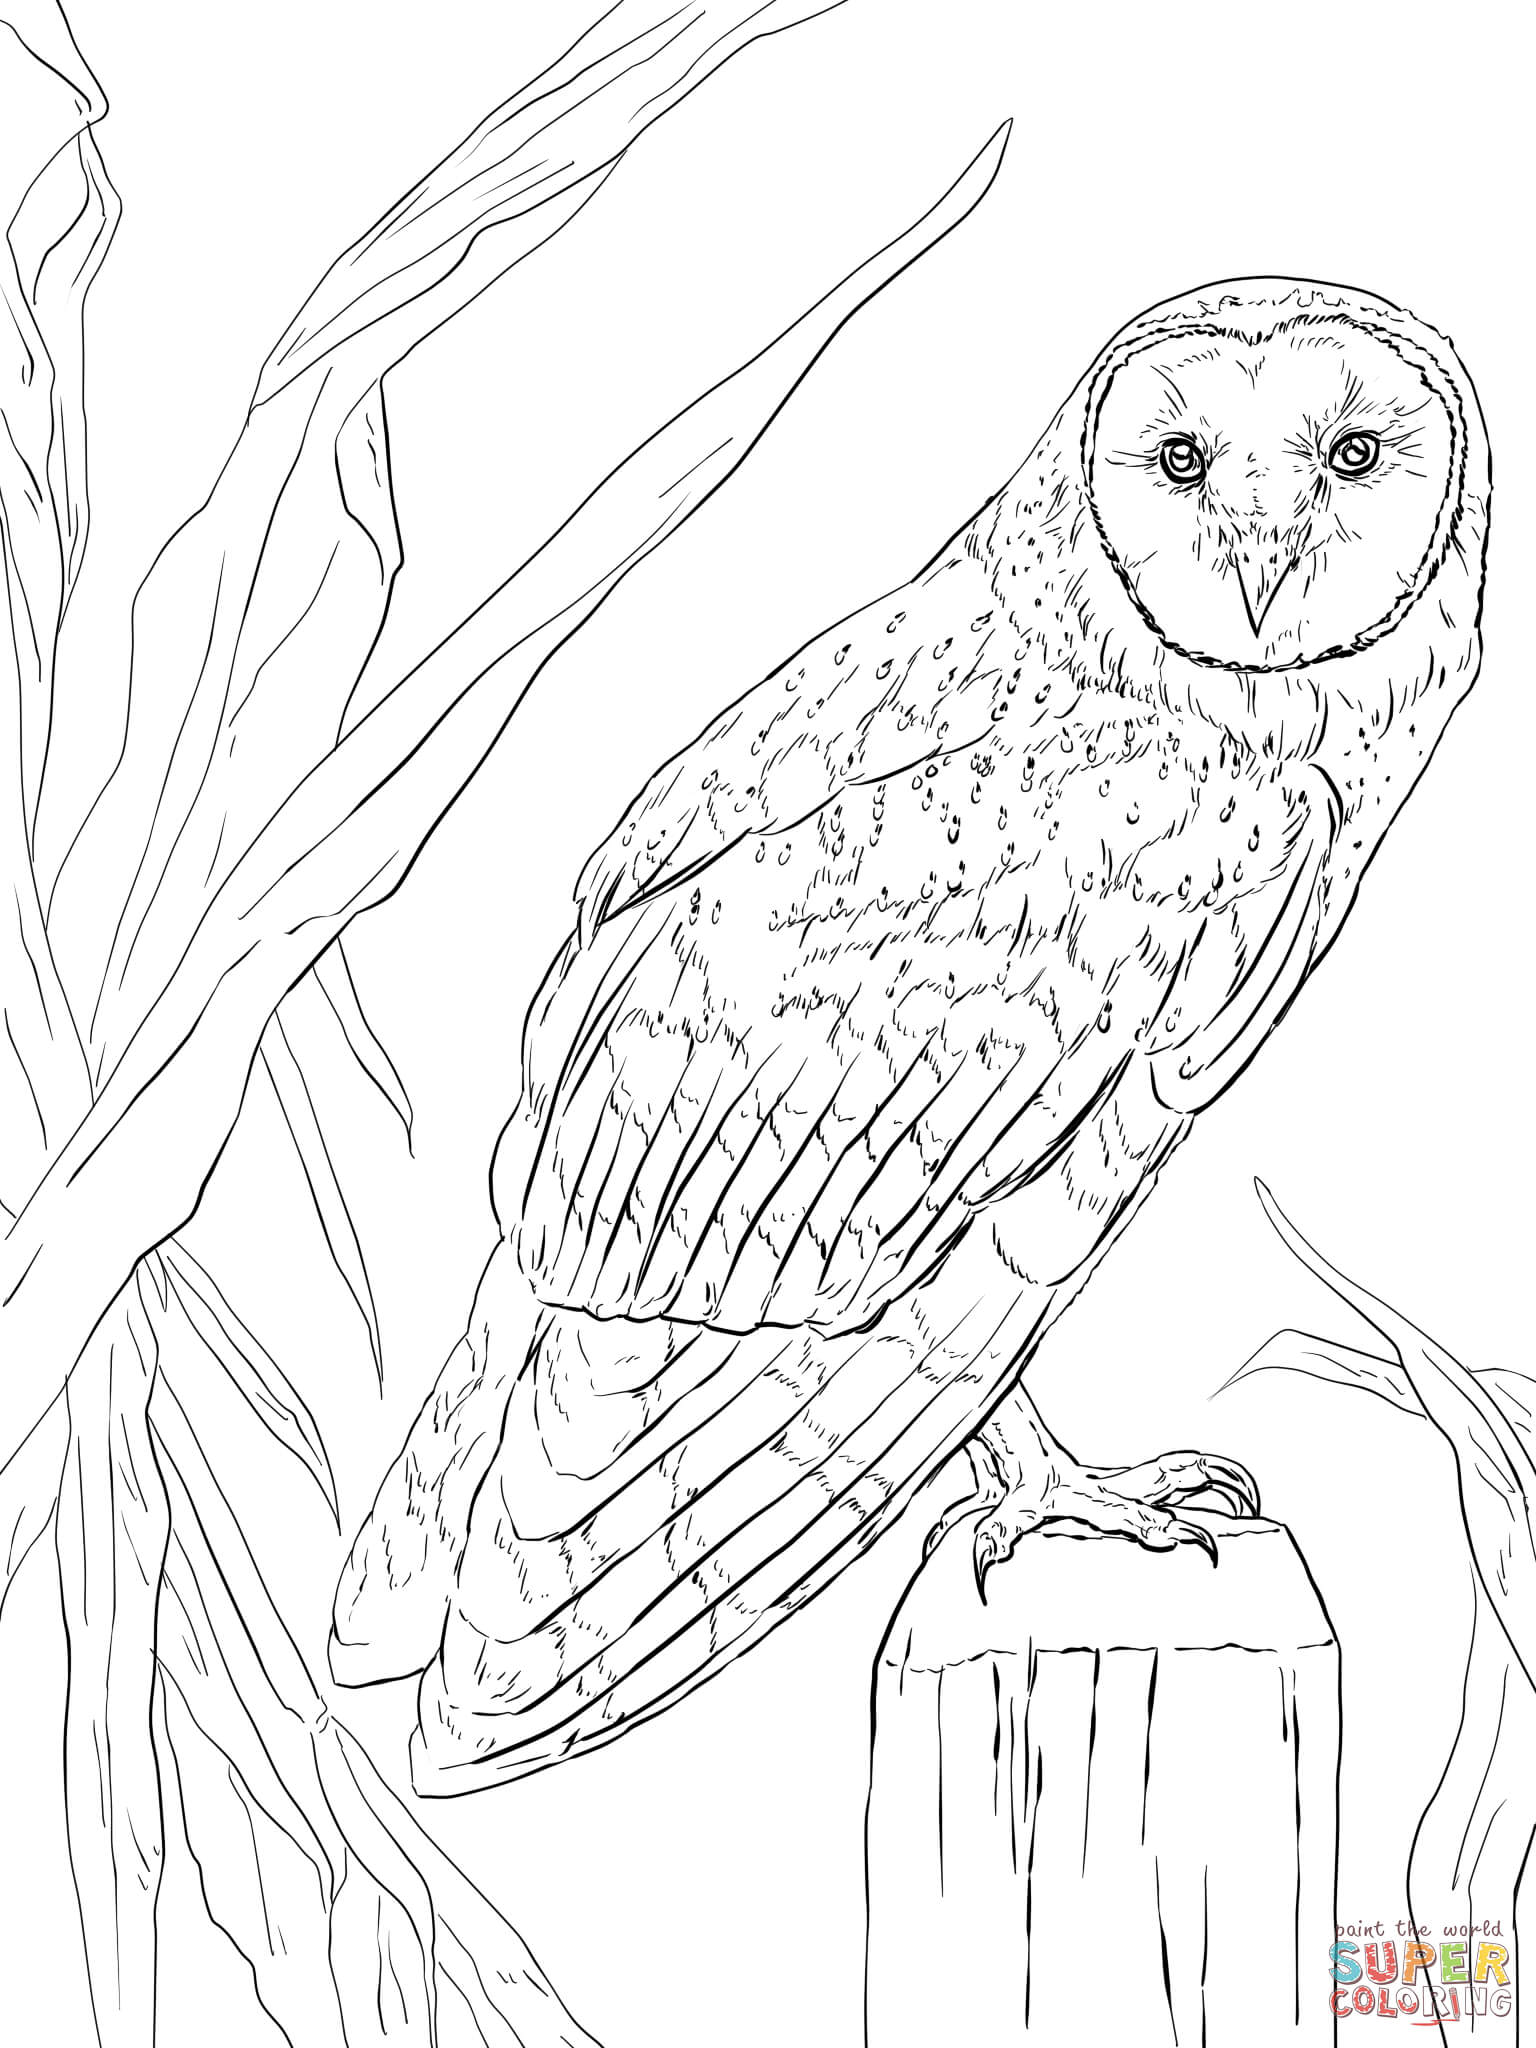 nocturnal animals coloring sheets free pictures of nocturnal animals download free clip art sheets nocturnal coloring animals